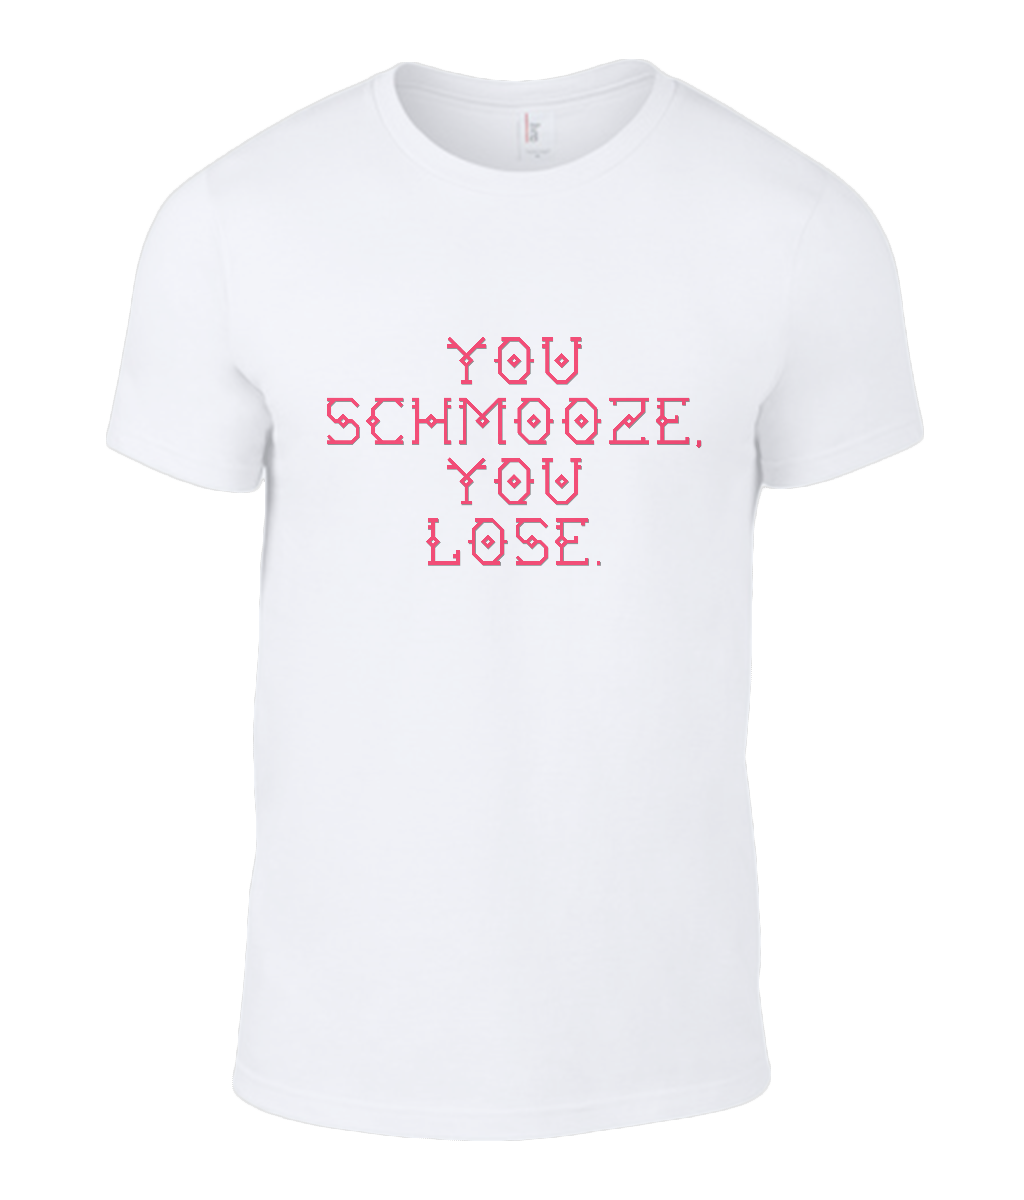 Round Neck T-Shirt - You Schmooze You Lose